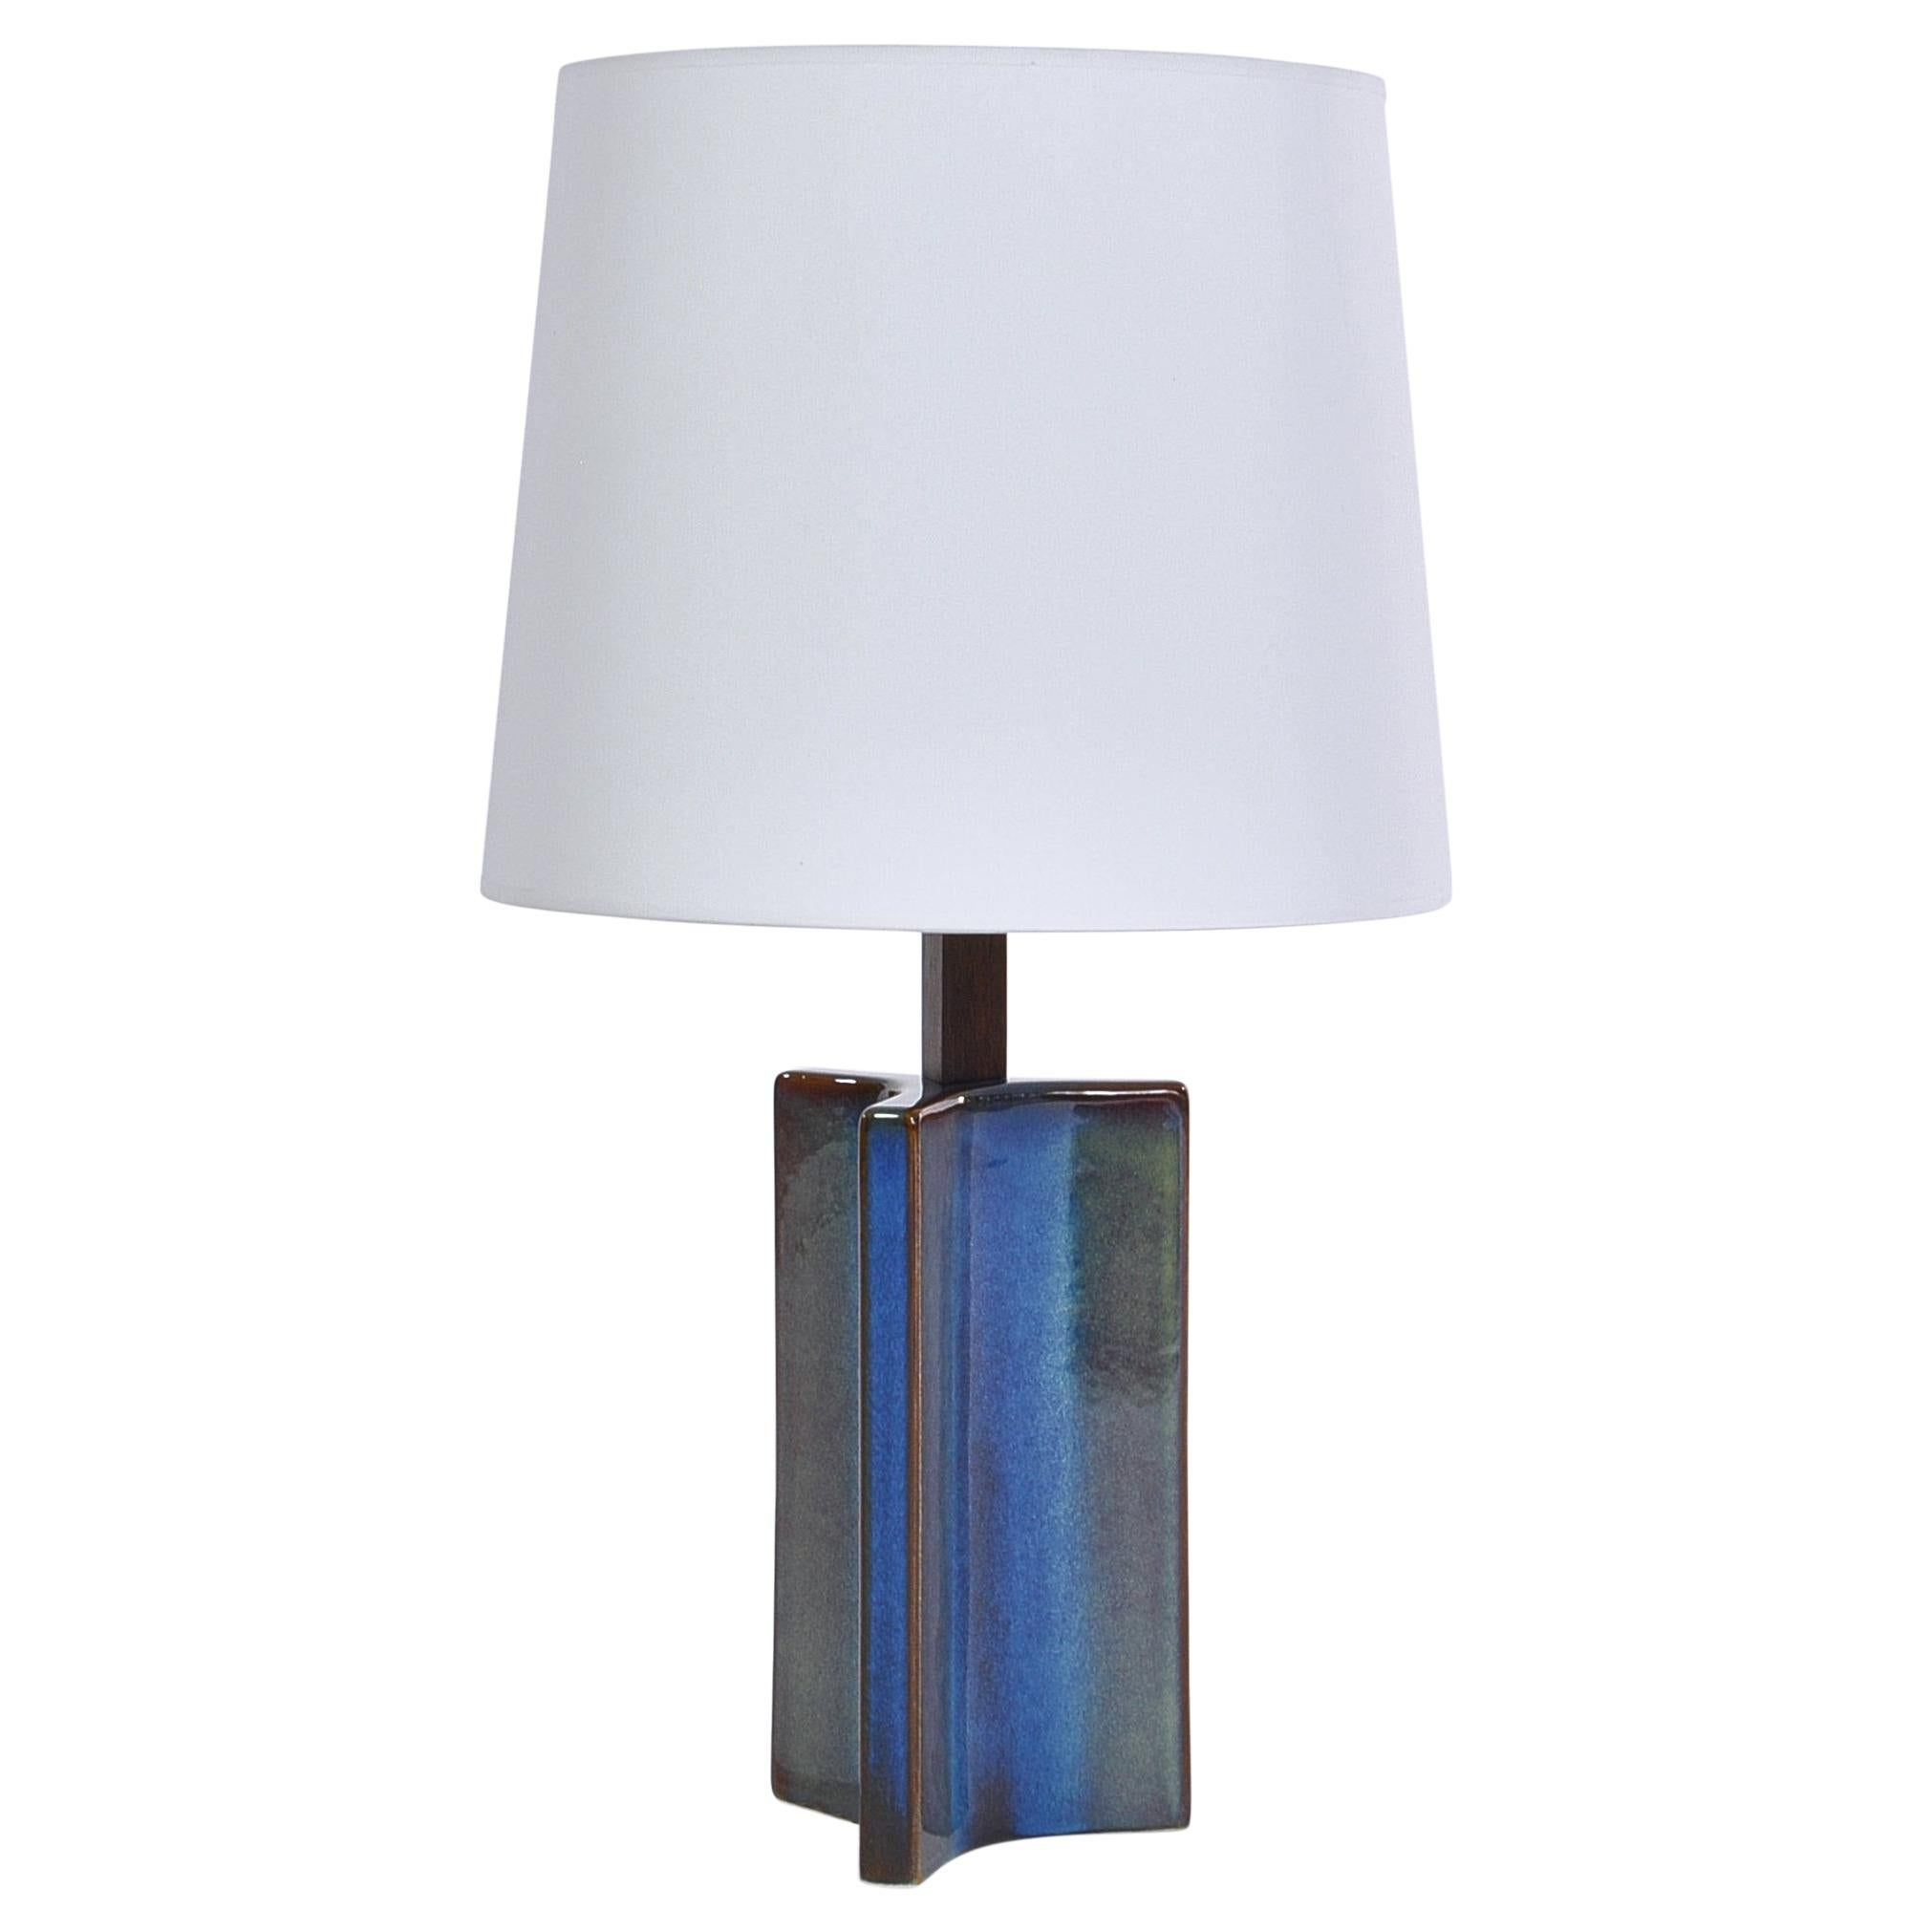 Danish Modern Large Blue Table Lamp from Søholm Stoneware, 1960s